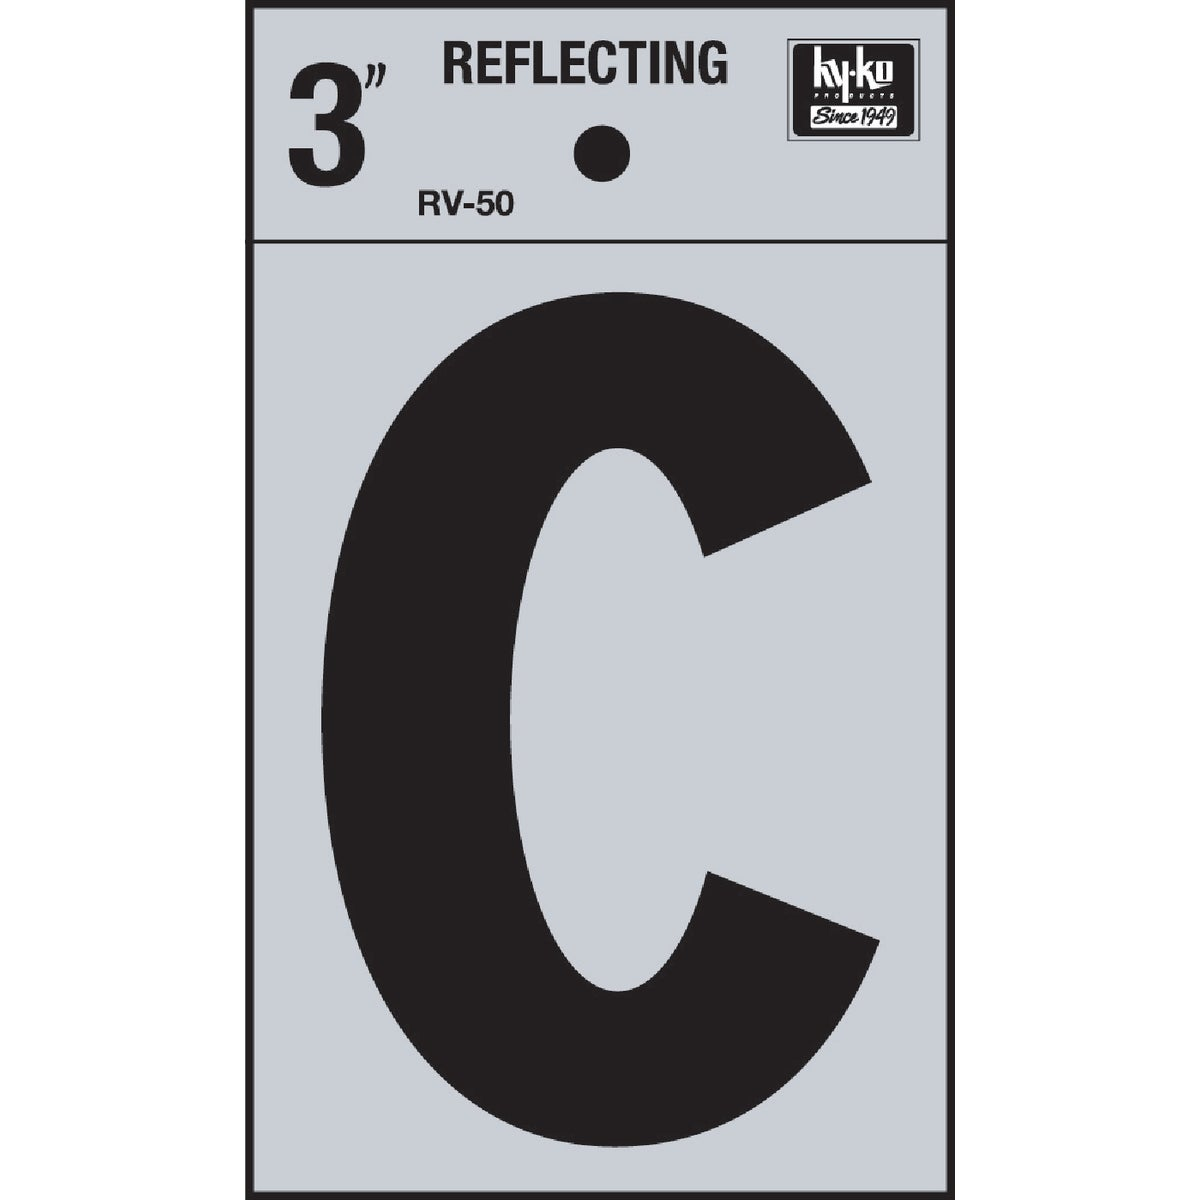 "3"" REFLECT LETTER C - RV-50C by Hy Ko Prods Co"